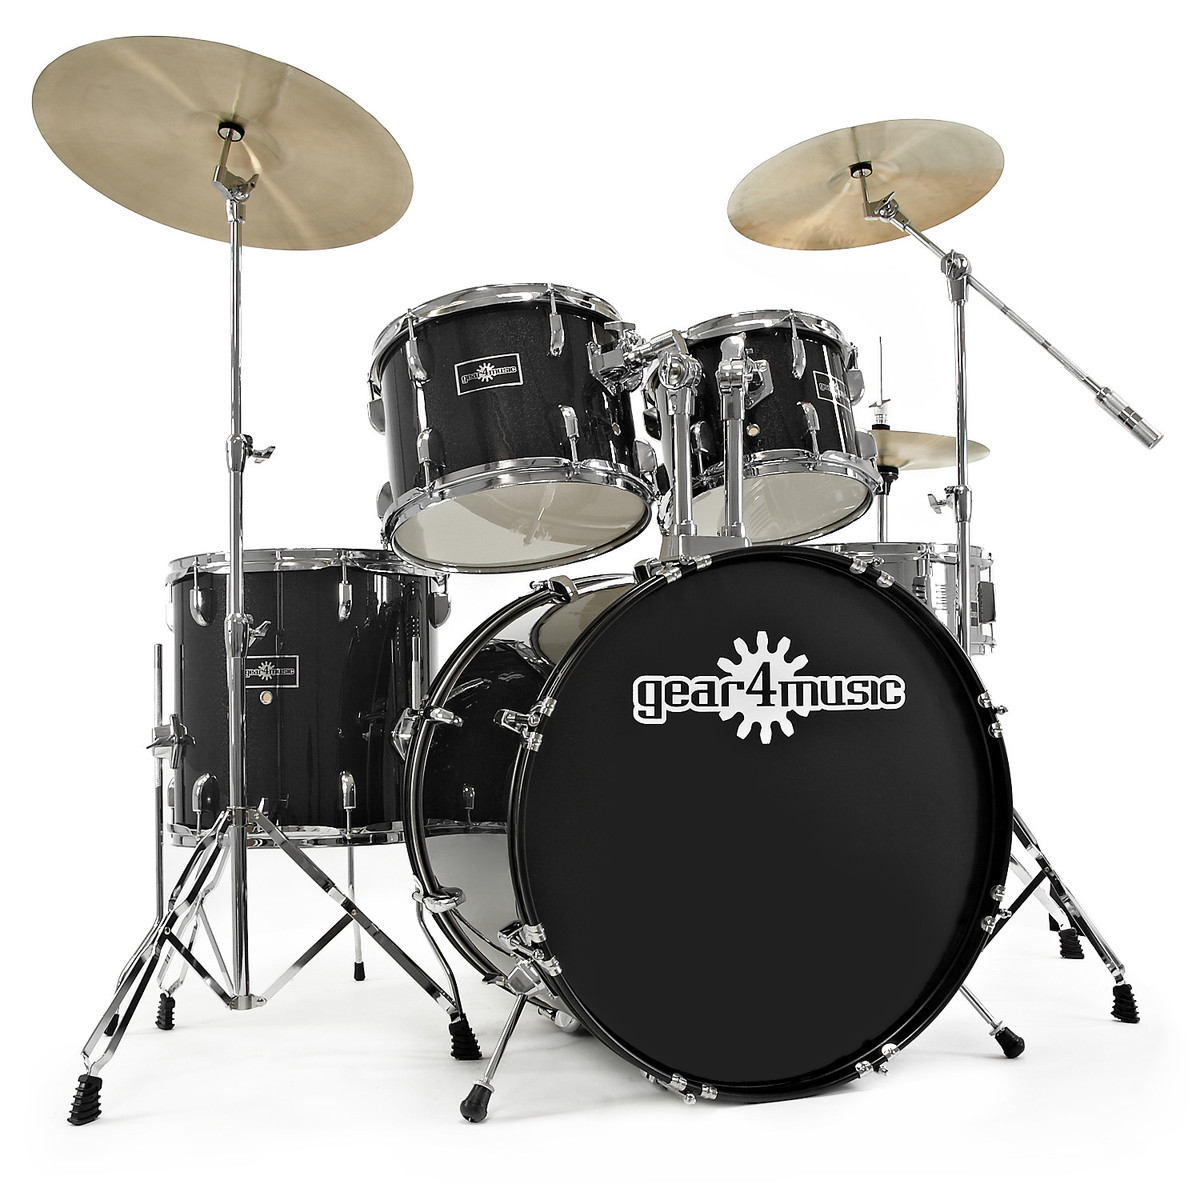 gd 7 fusion drum kit by gear4music black sparkle at. Black Bedroom Furniture Sets. Home Design Ideas